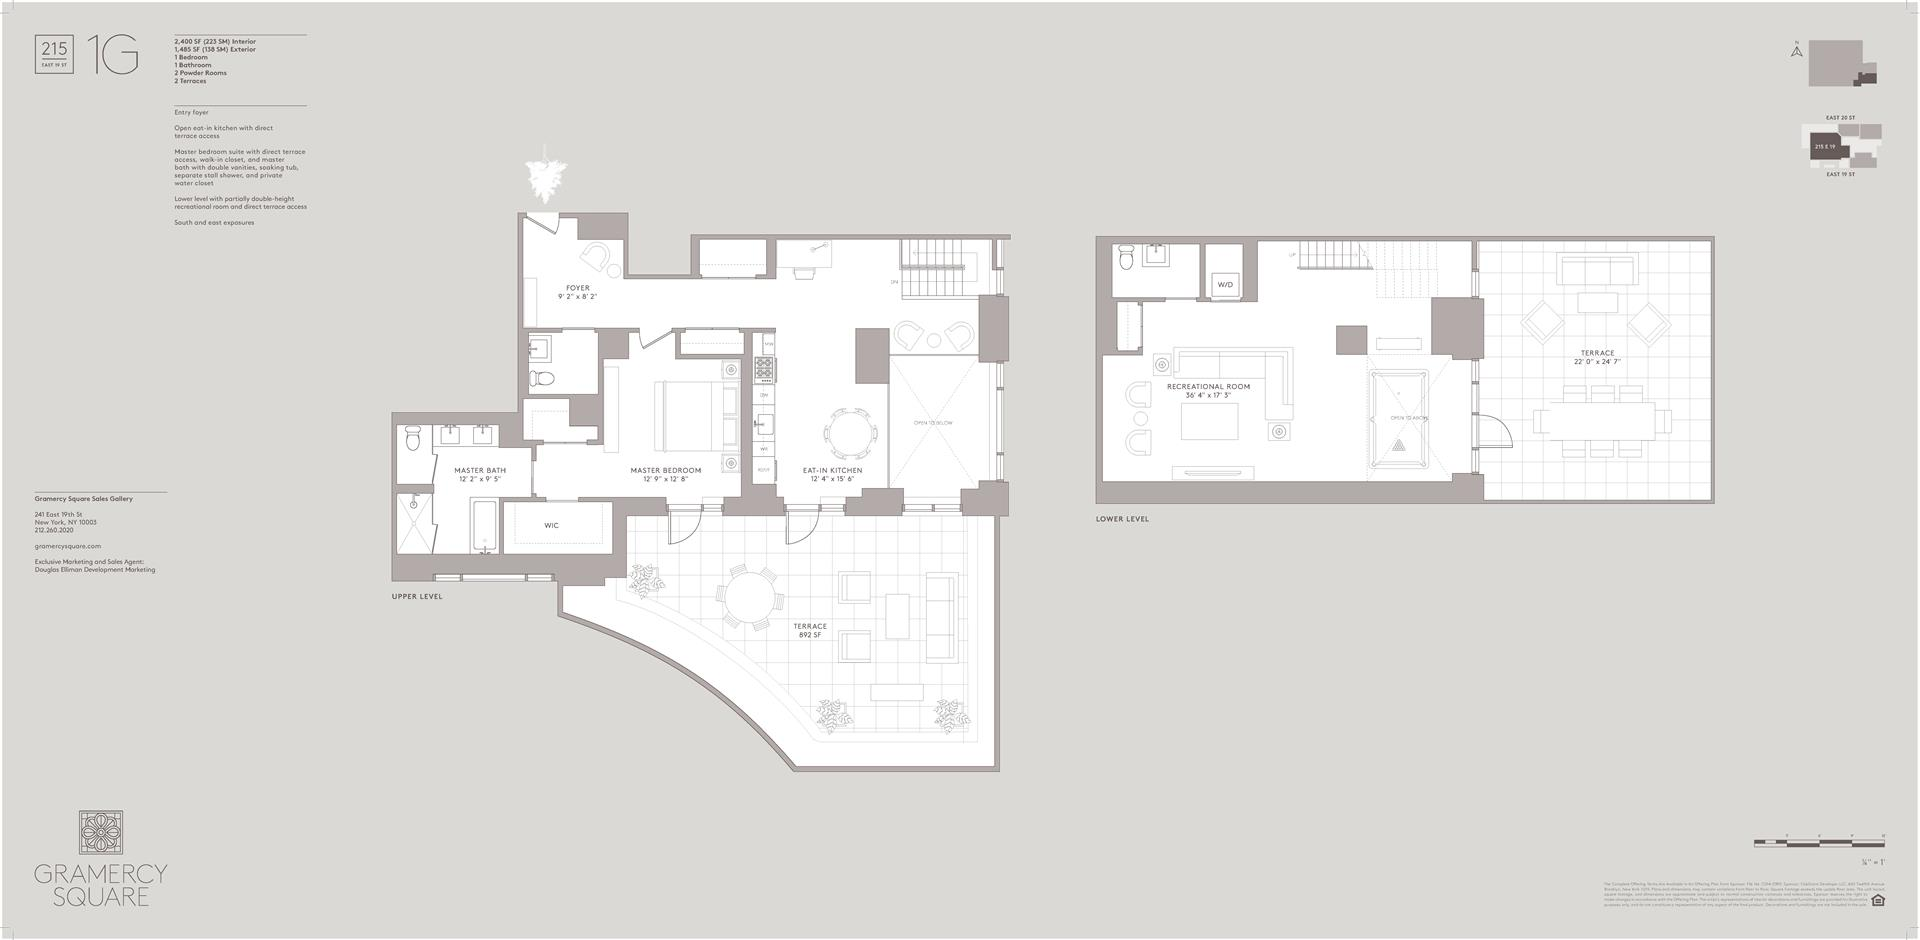 Floor plan of Gramercy Square, 215 East 19th St, 1G - Gramercy - Union Square, New York